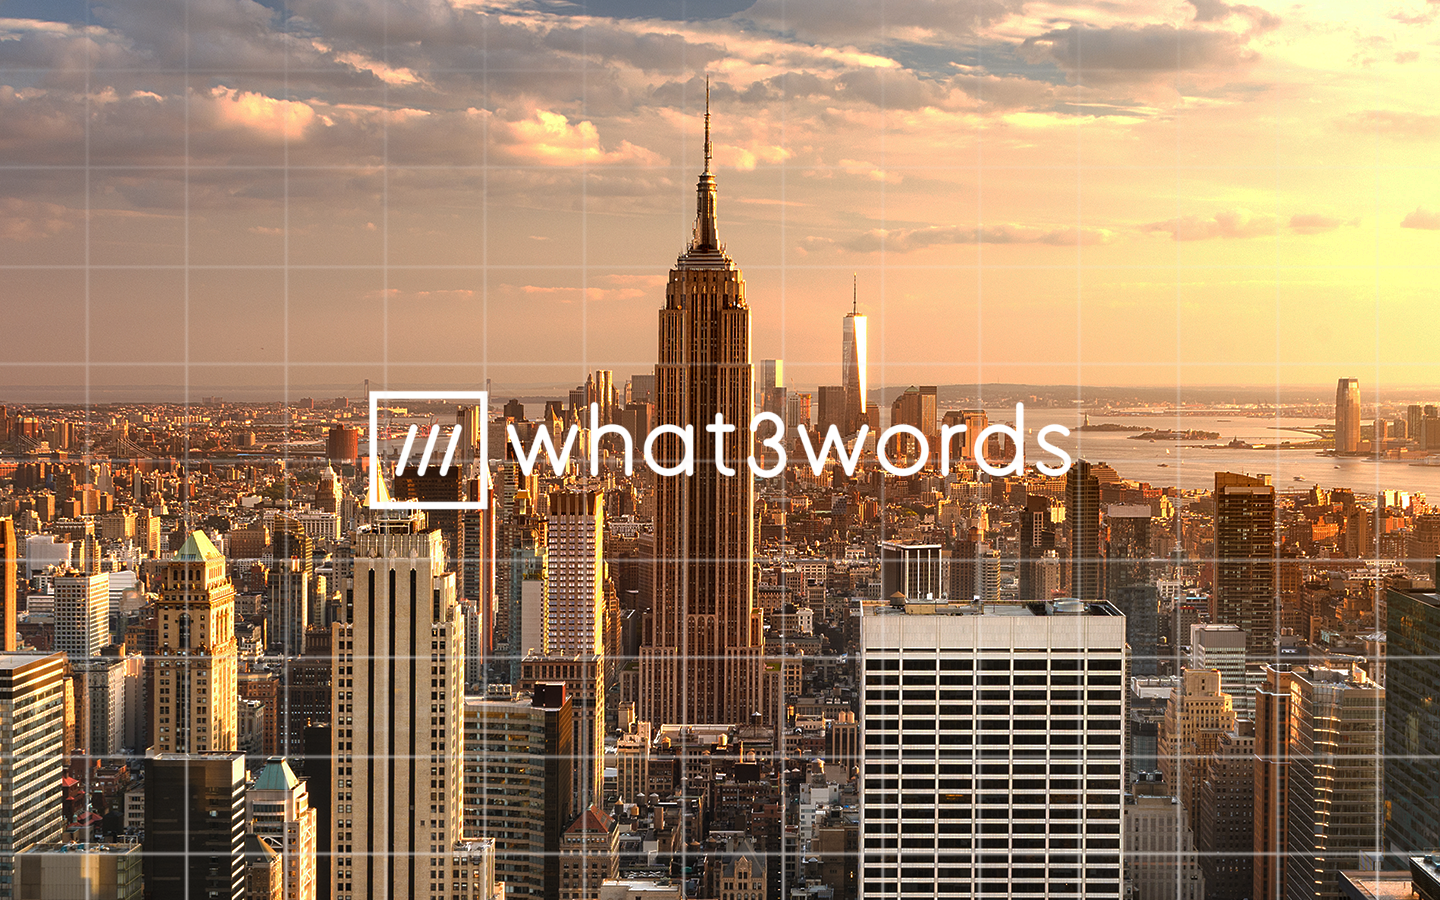 what3words grid coverage over New York City.